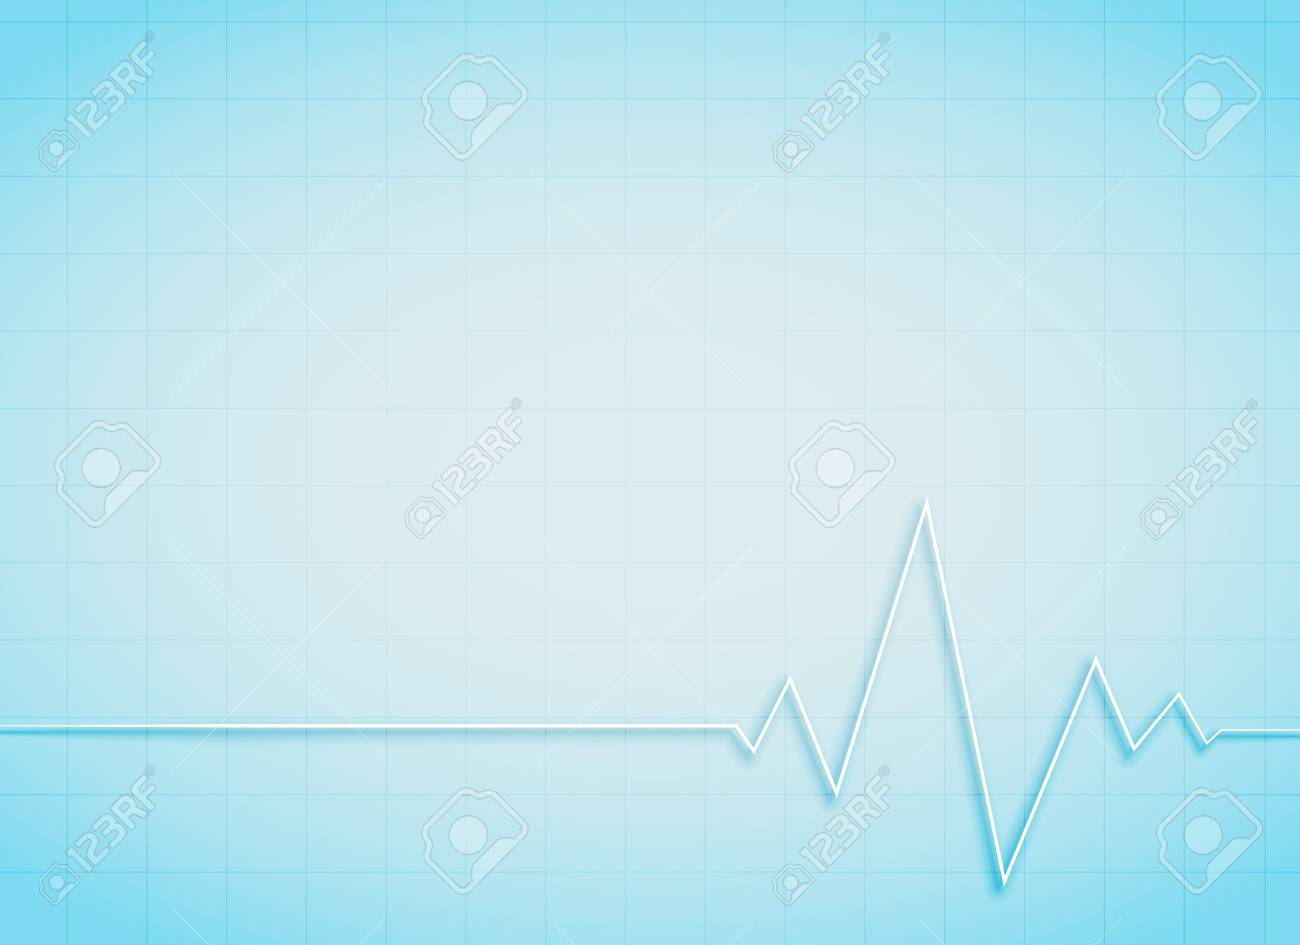 Clean Medical And Healthcare Background With Heart Beat Royalty 1300x945